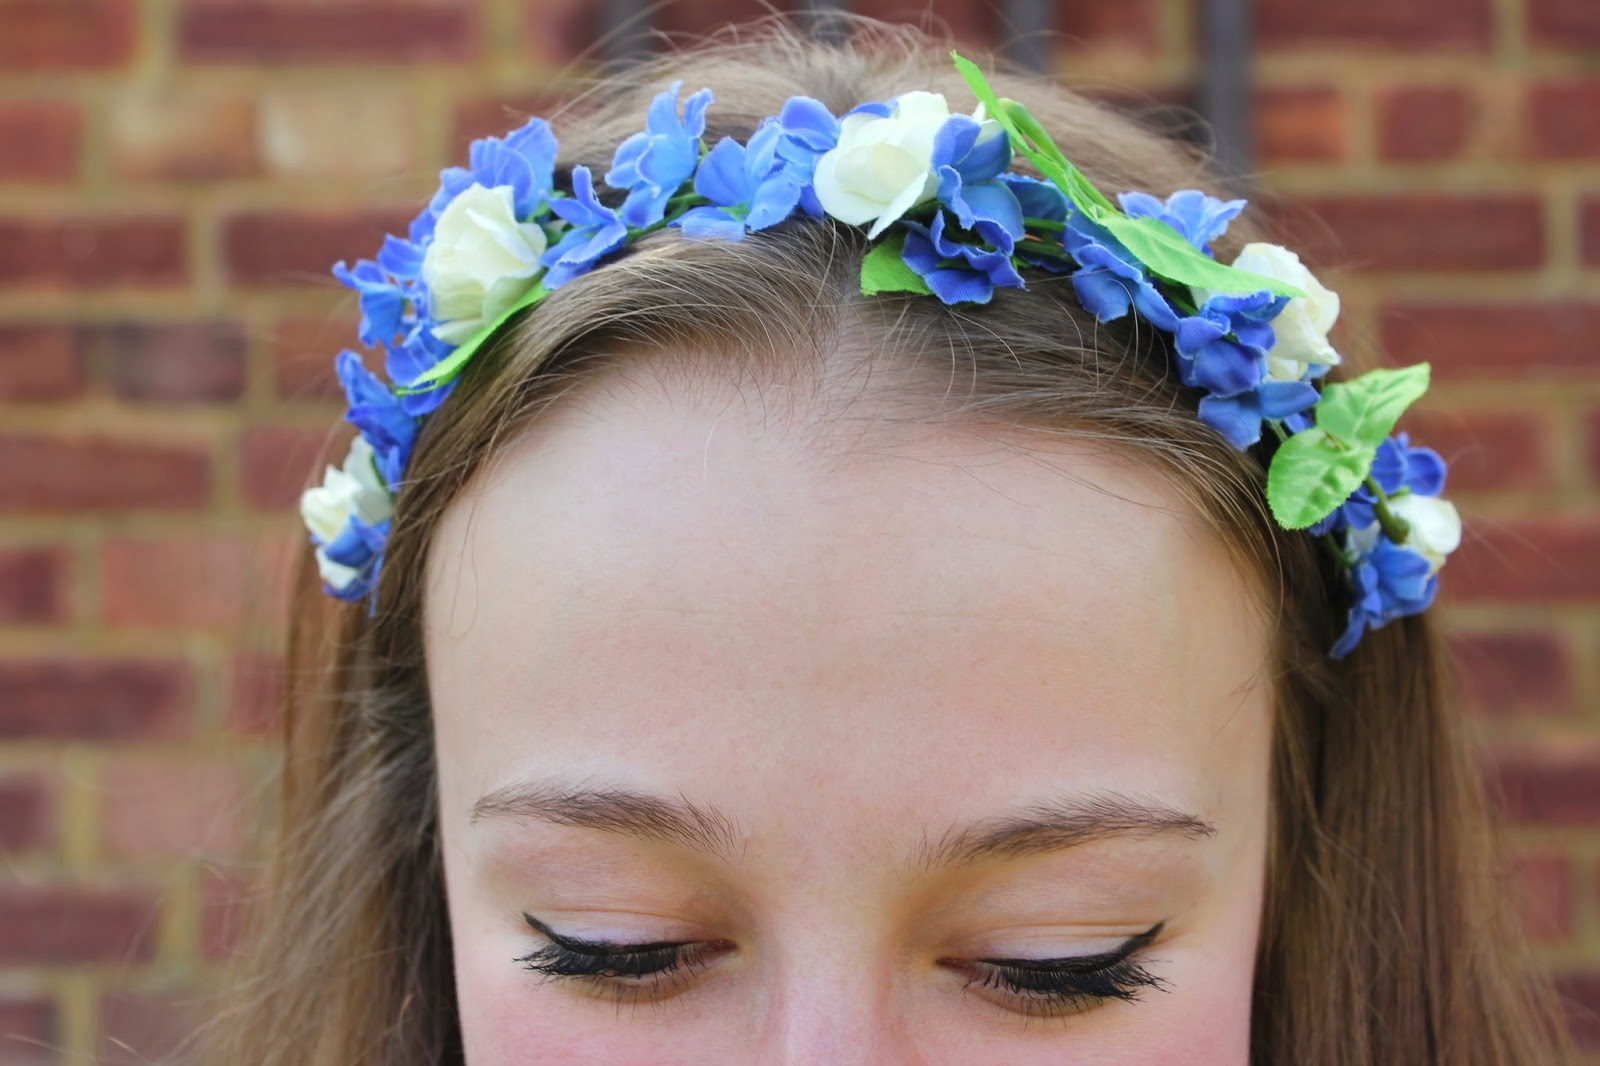 blogger-accessories-inspiration-fashion-headdress-flower-garland-poppydaisy